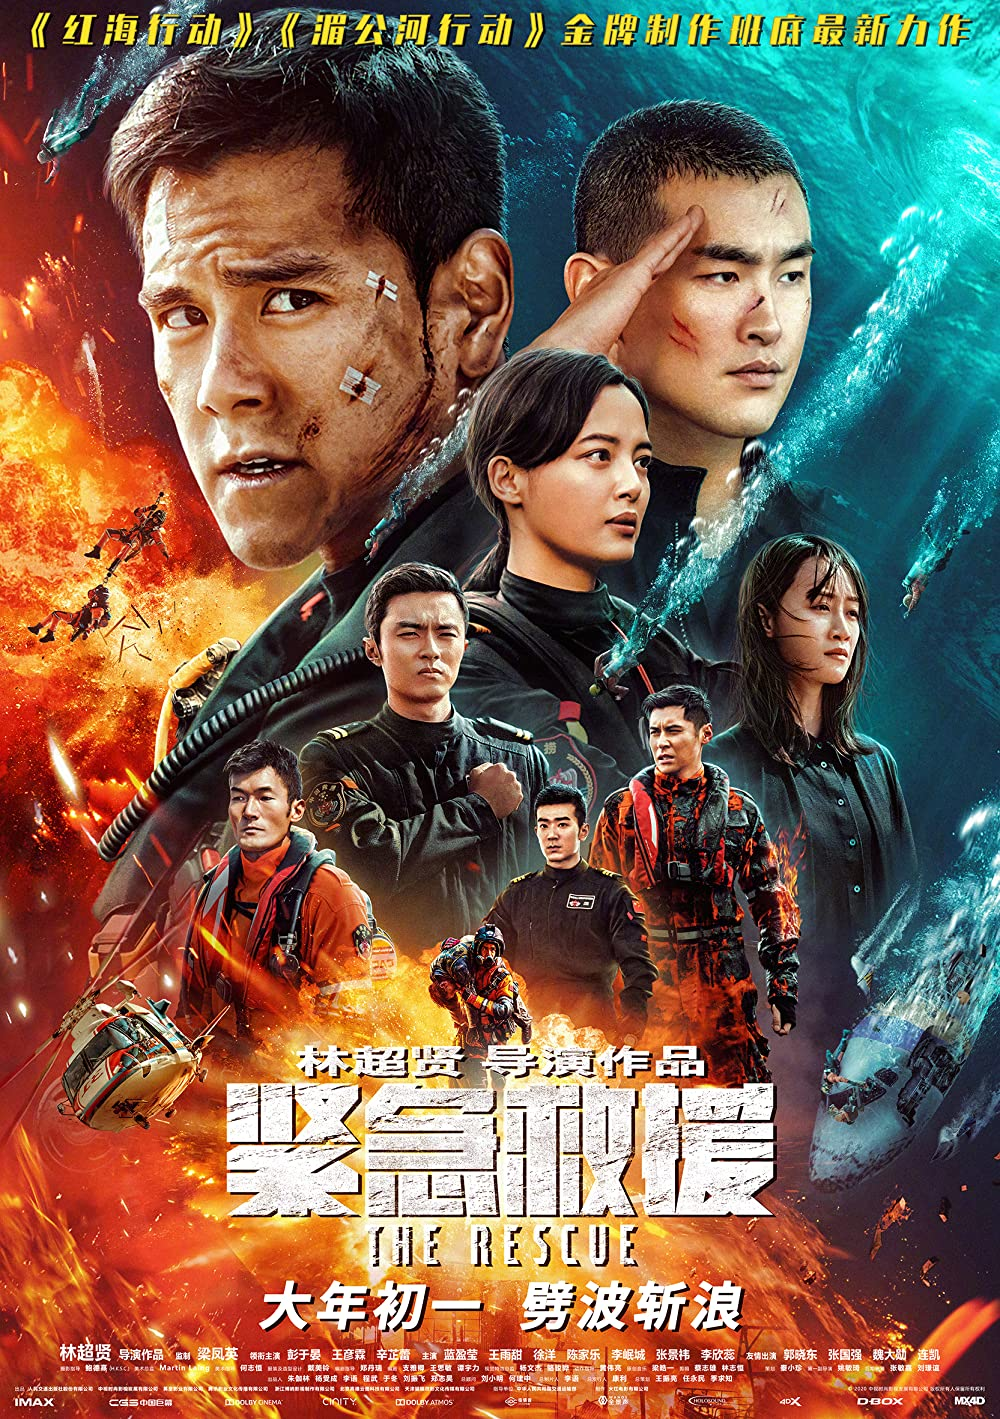 The Rescue 2020 Chinese 420MB HDRip Download